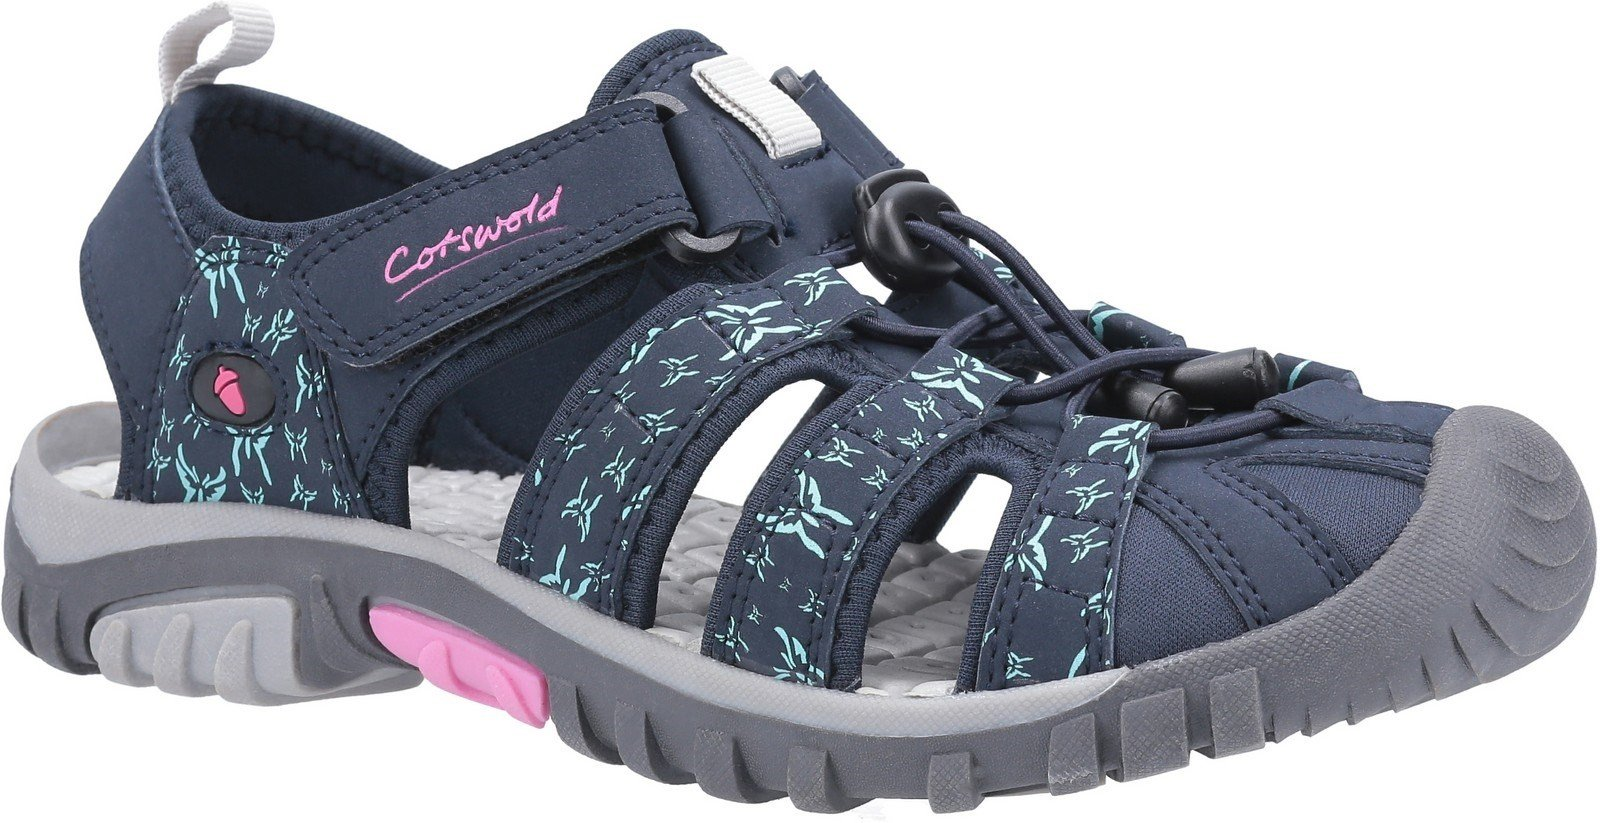 Cotswold Women's Sandhurst Touch Fastening Sandal Various Colours 30143 - Navy/Pink 3